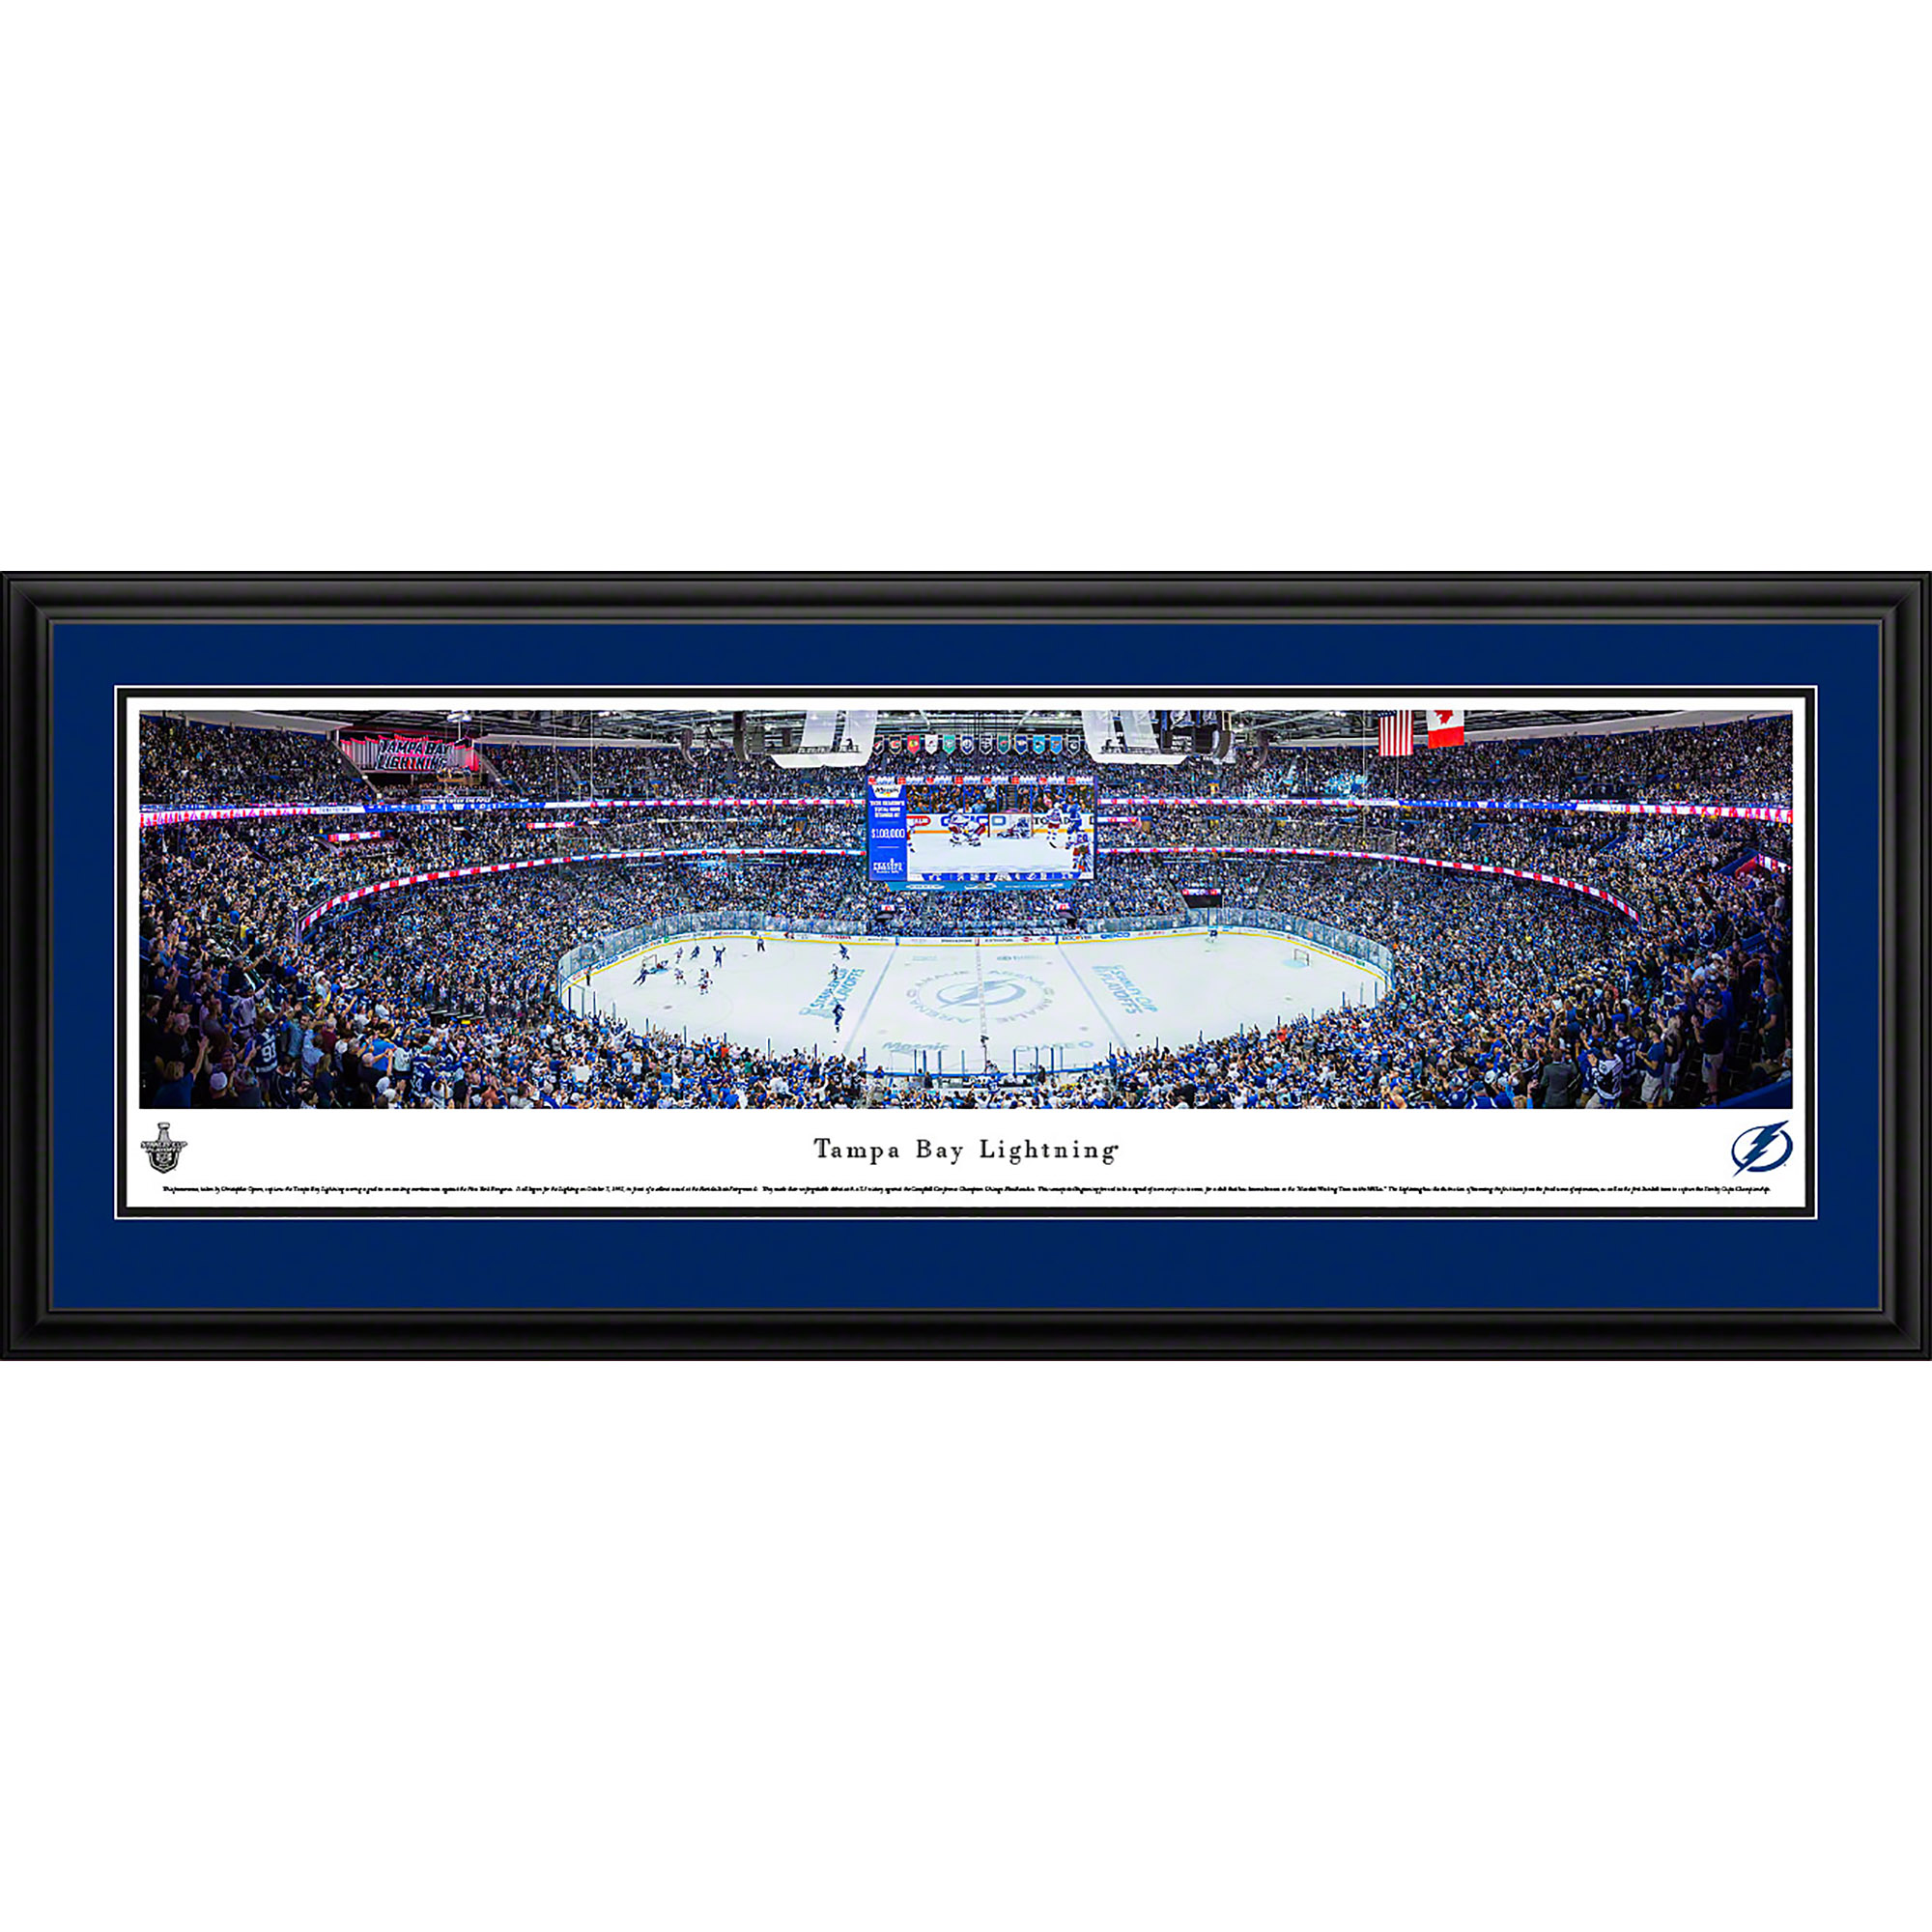 Tampa Bay Lightning - Blakeway Panoramas NHL Print with Deluxe Frame and Double Mat